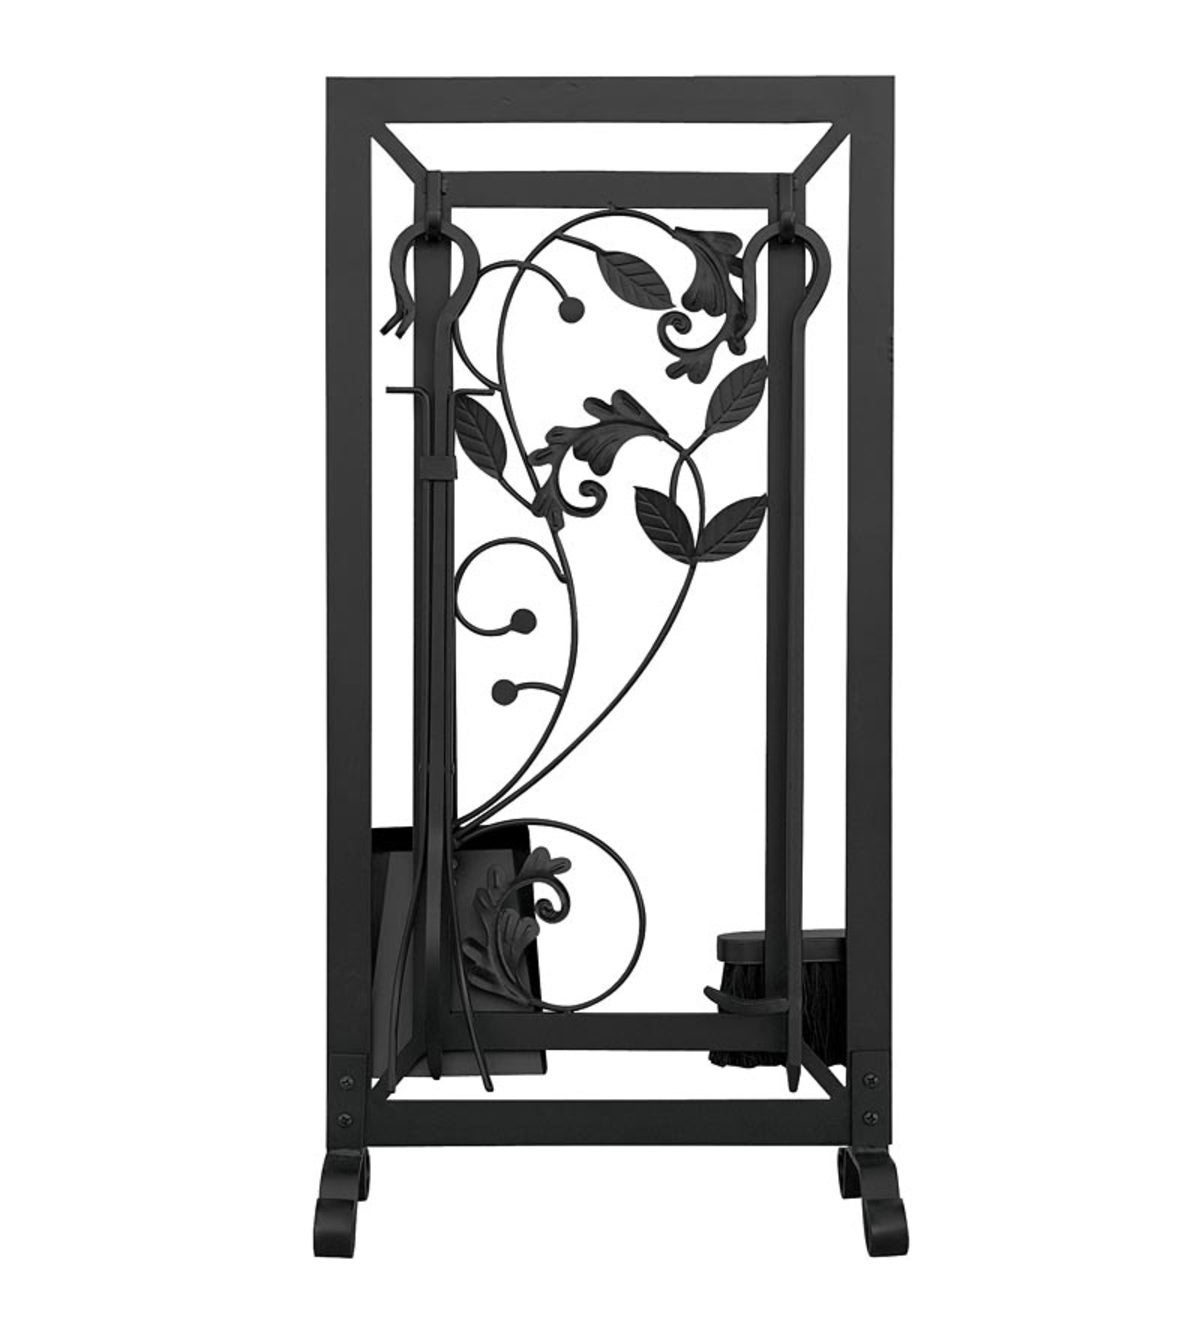 Black Wrought Iron 5 Piece Fireplace Tool Set With Flowing Leaf Design